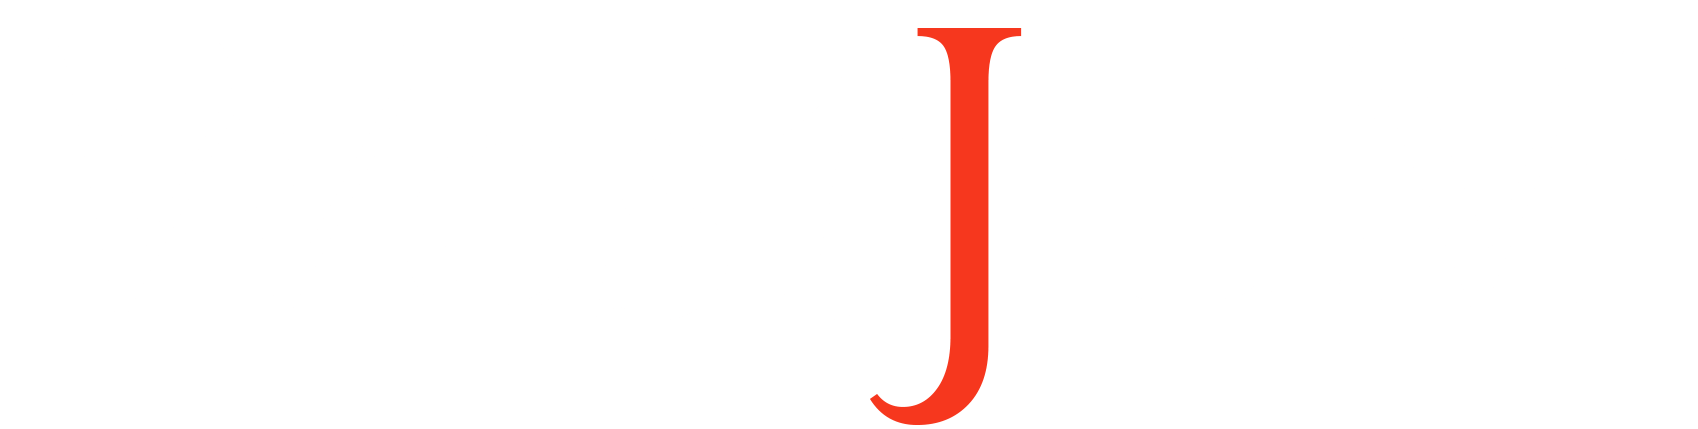 Professional Society Sponsors - The Western Journal of Emergency Medicine